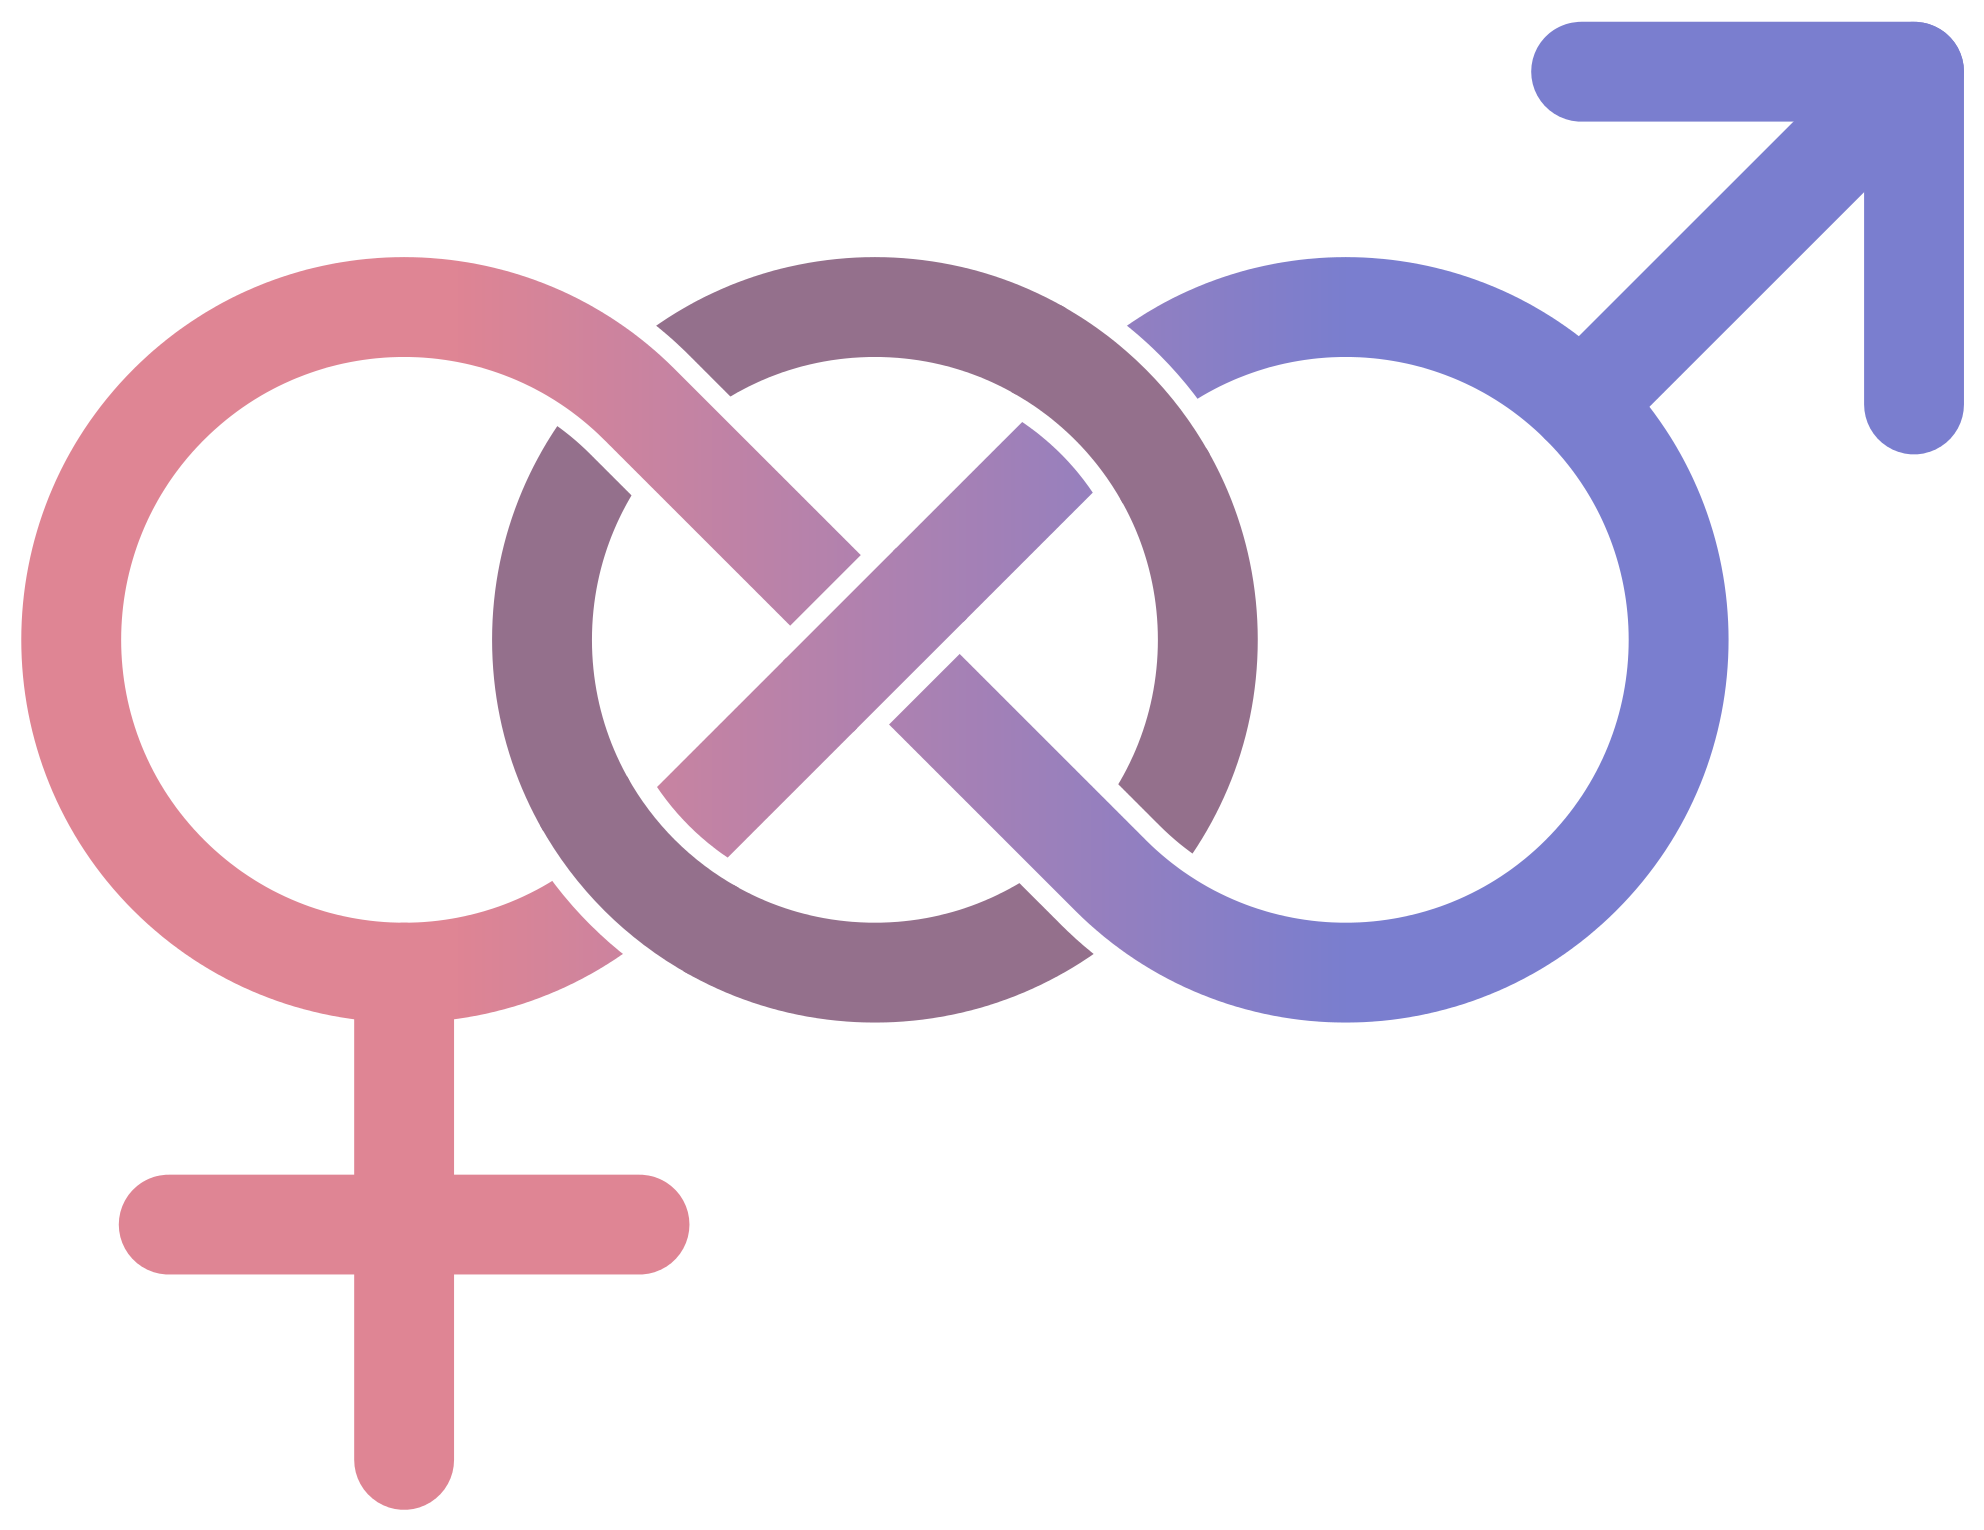 Gender Equality Is About Celebrating Both The Sexes.